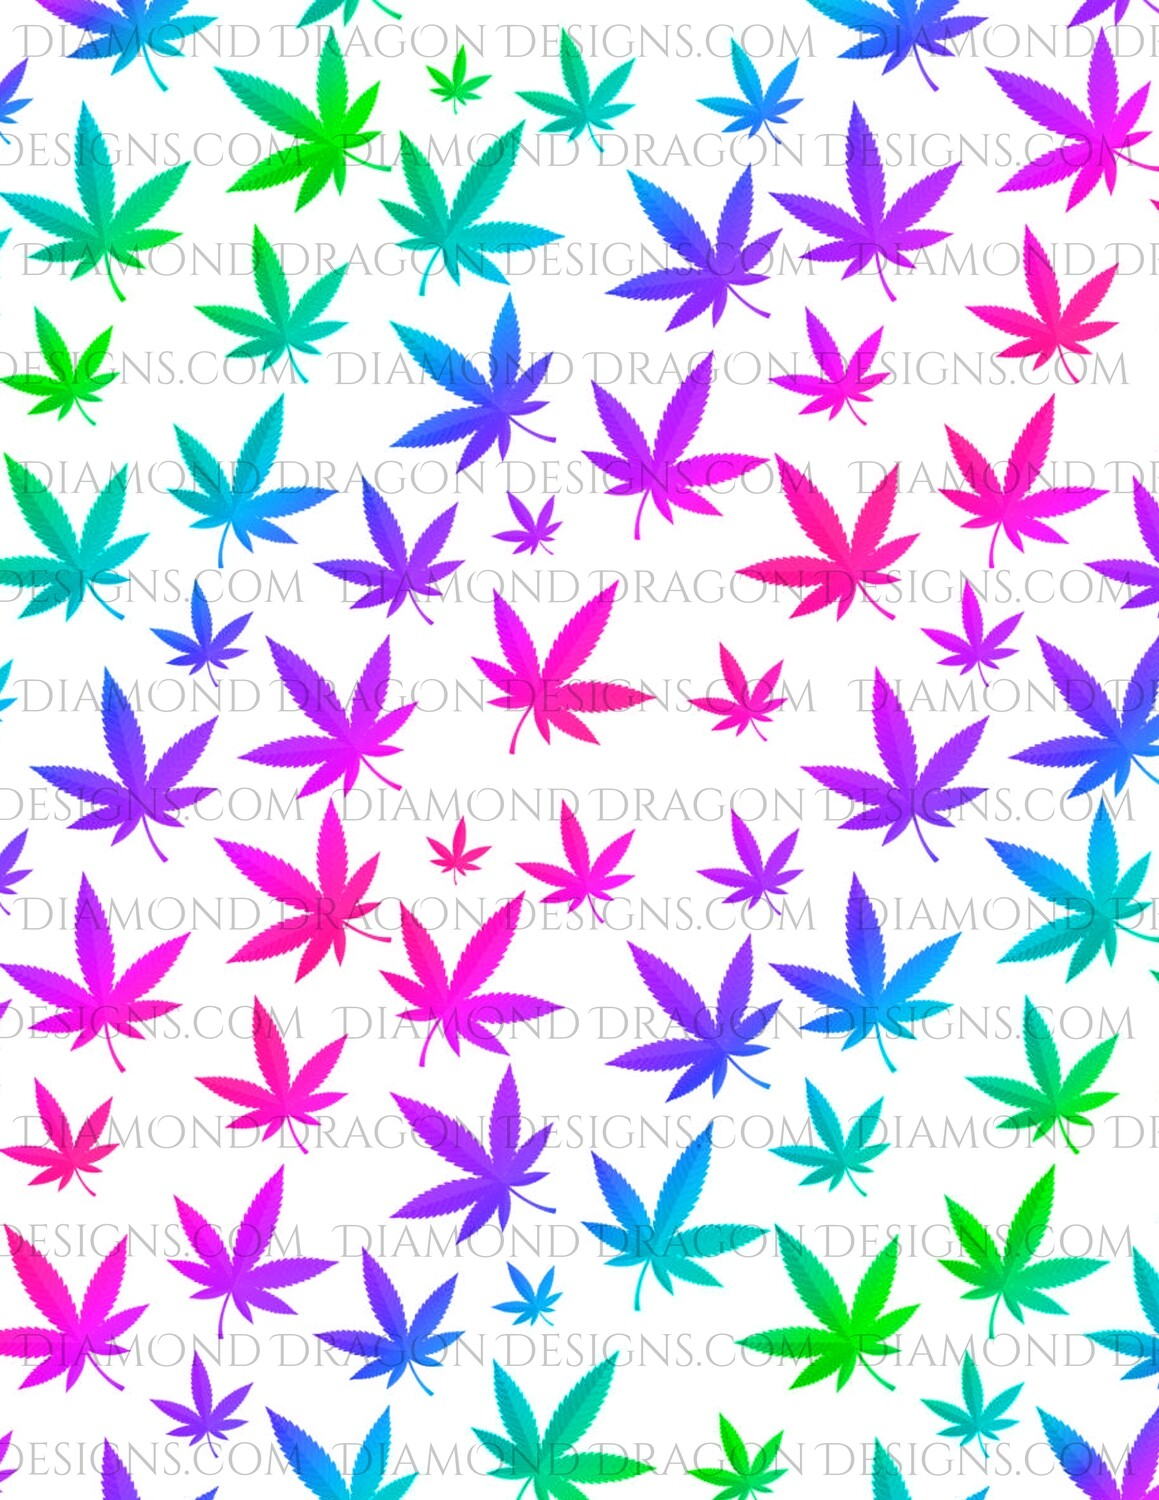 Full Page -  Pot Leaves, Rainbow Weed Leaves, Full Page Design - Waterslide